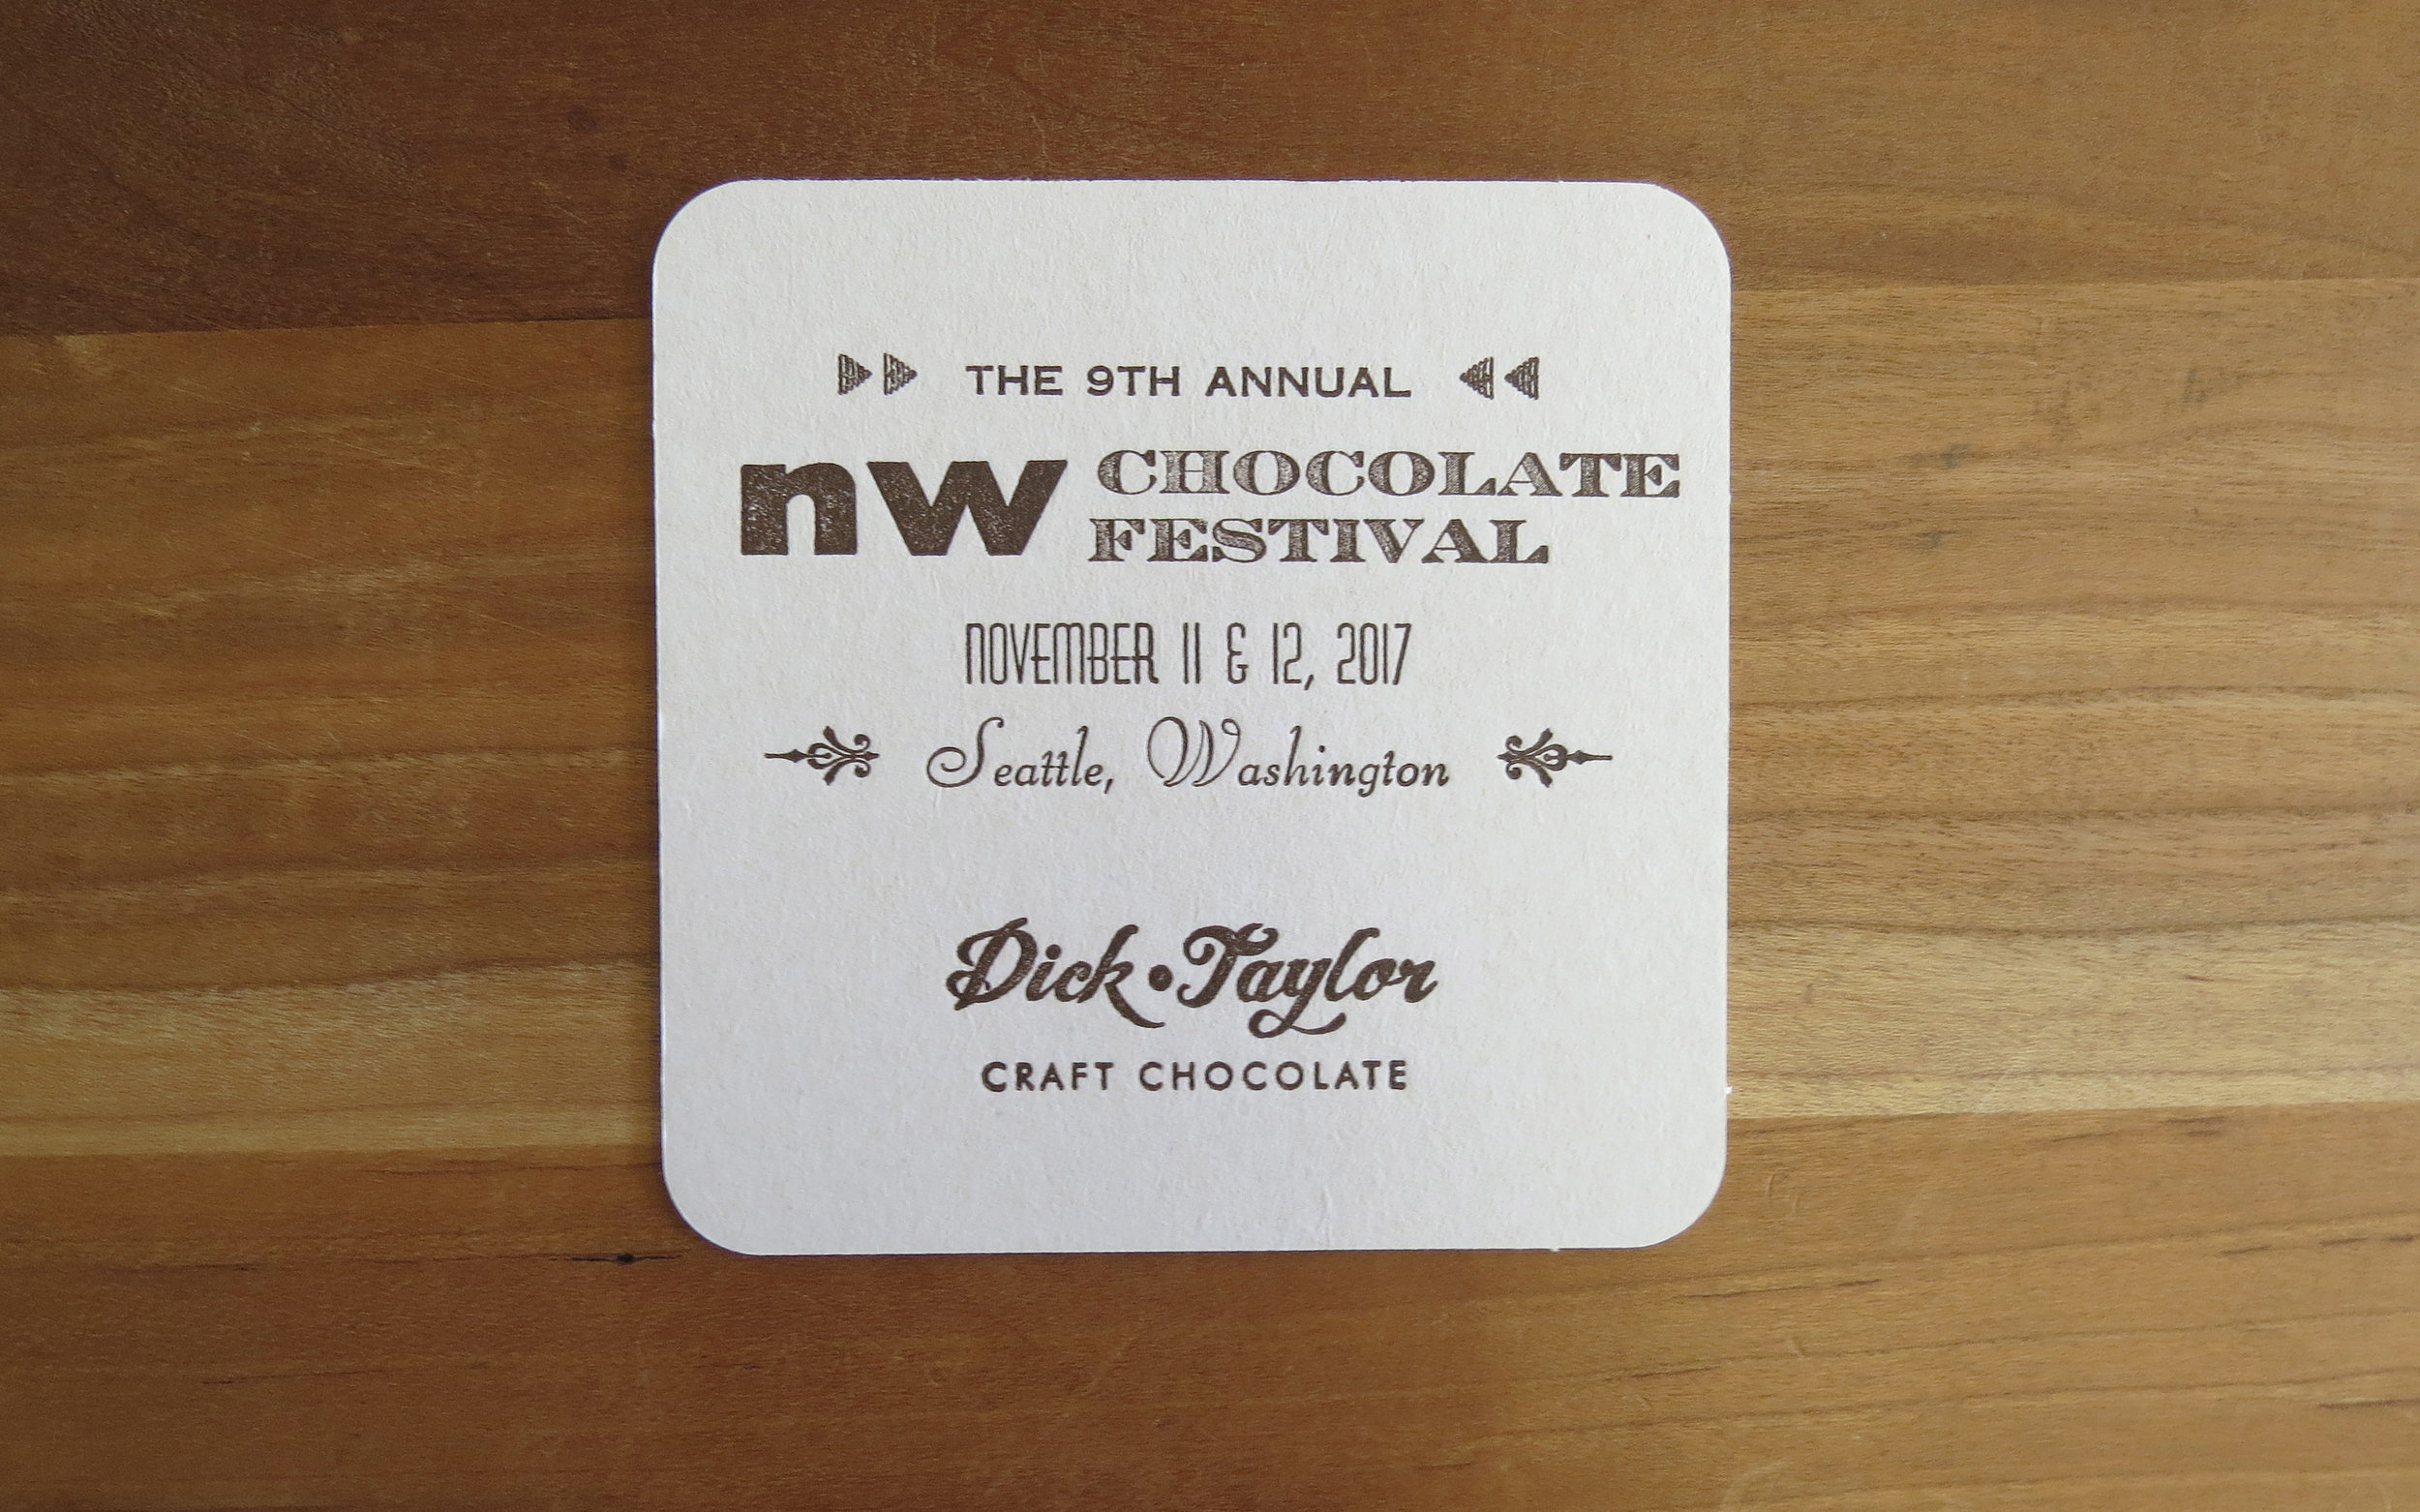 Coaster - Designed and handset by Lynn M. Jones for Dick Taylor Craft Chocolate. Printed by Northwest Chocolate Festival attendees on a small hand press in Dick Taylor's booth.